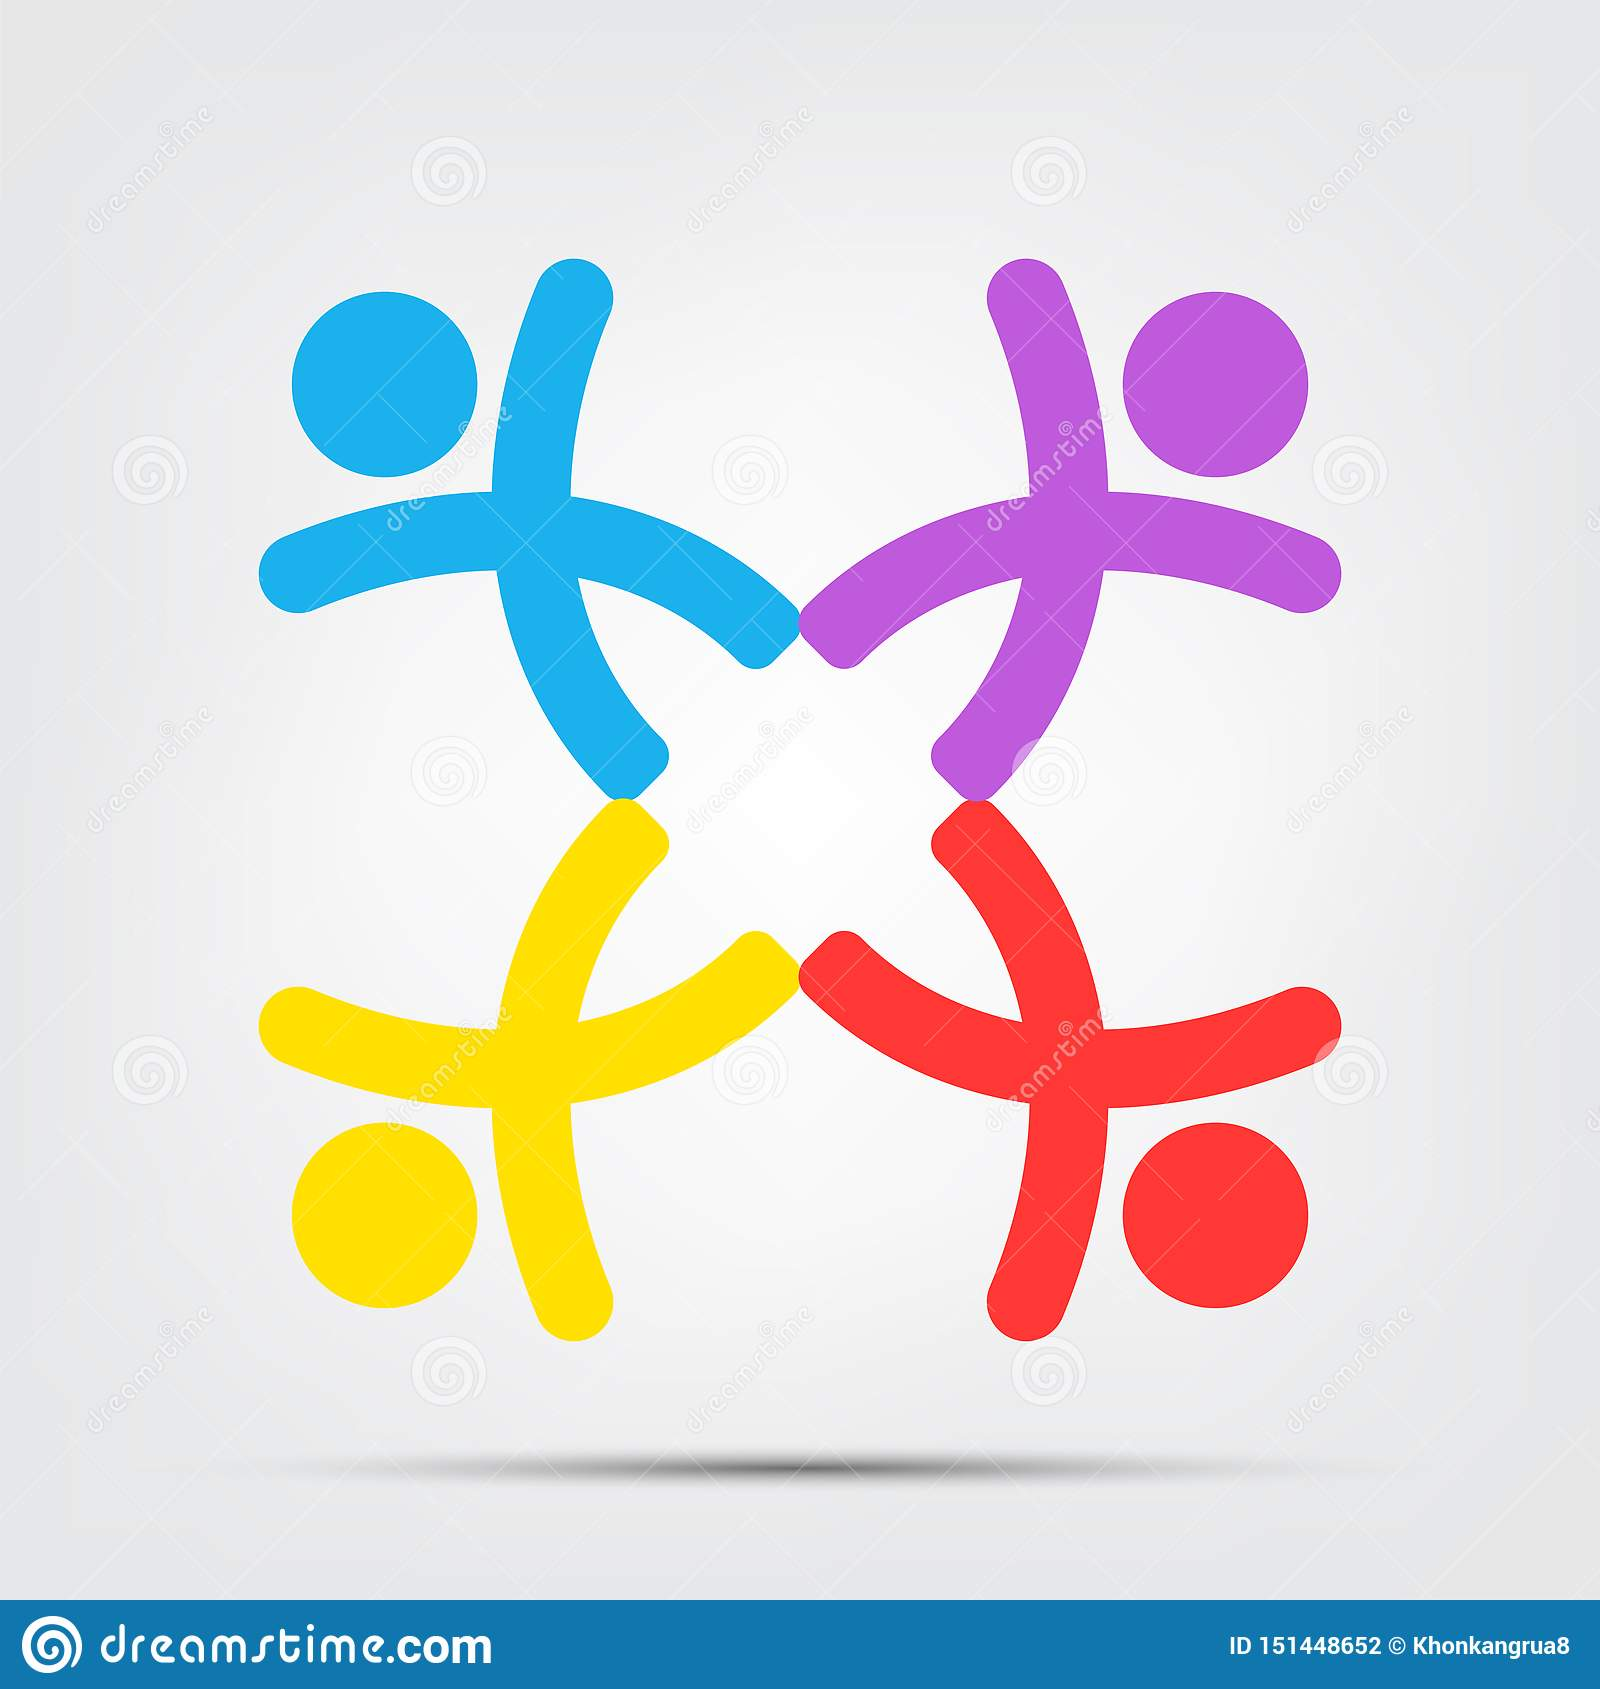 meeting room people logo.group of four persons in circle Isolate On White Background,Vector Illustration